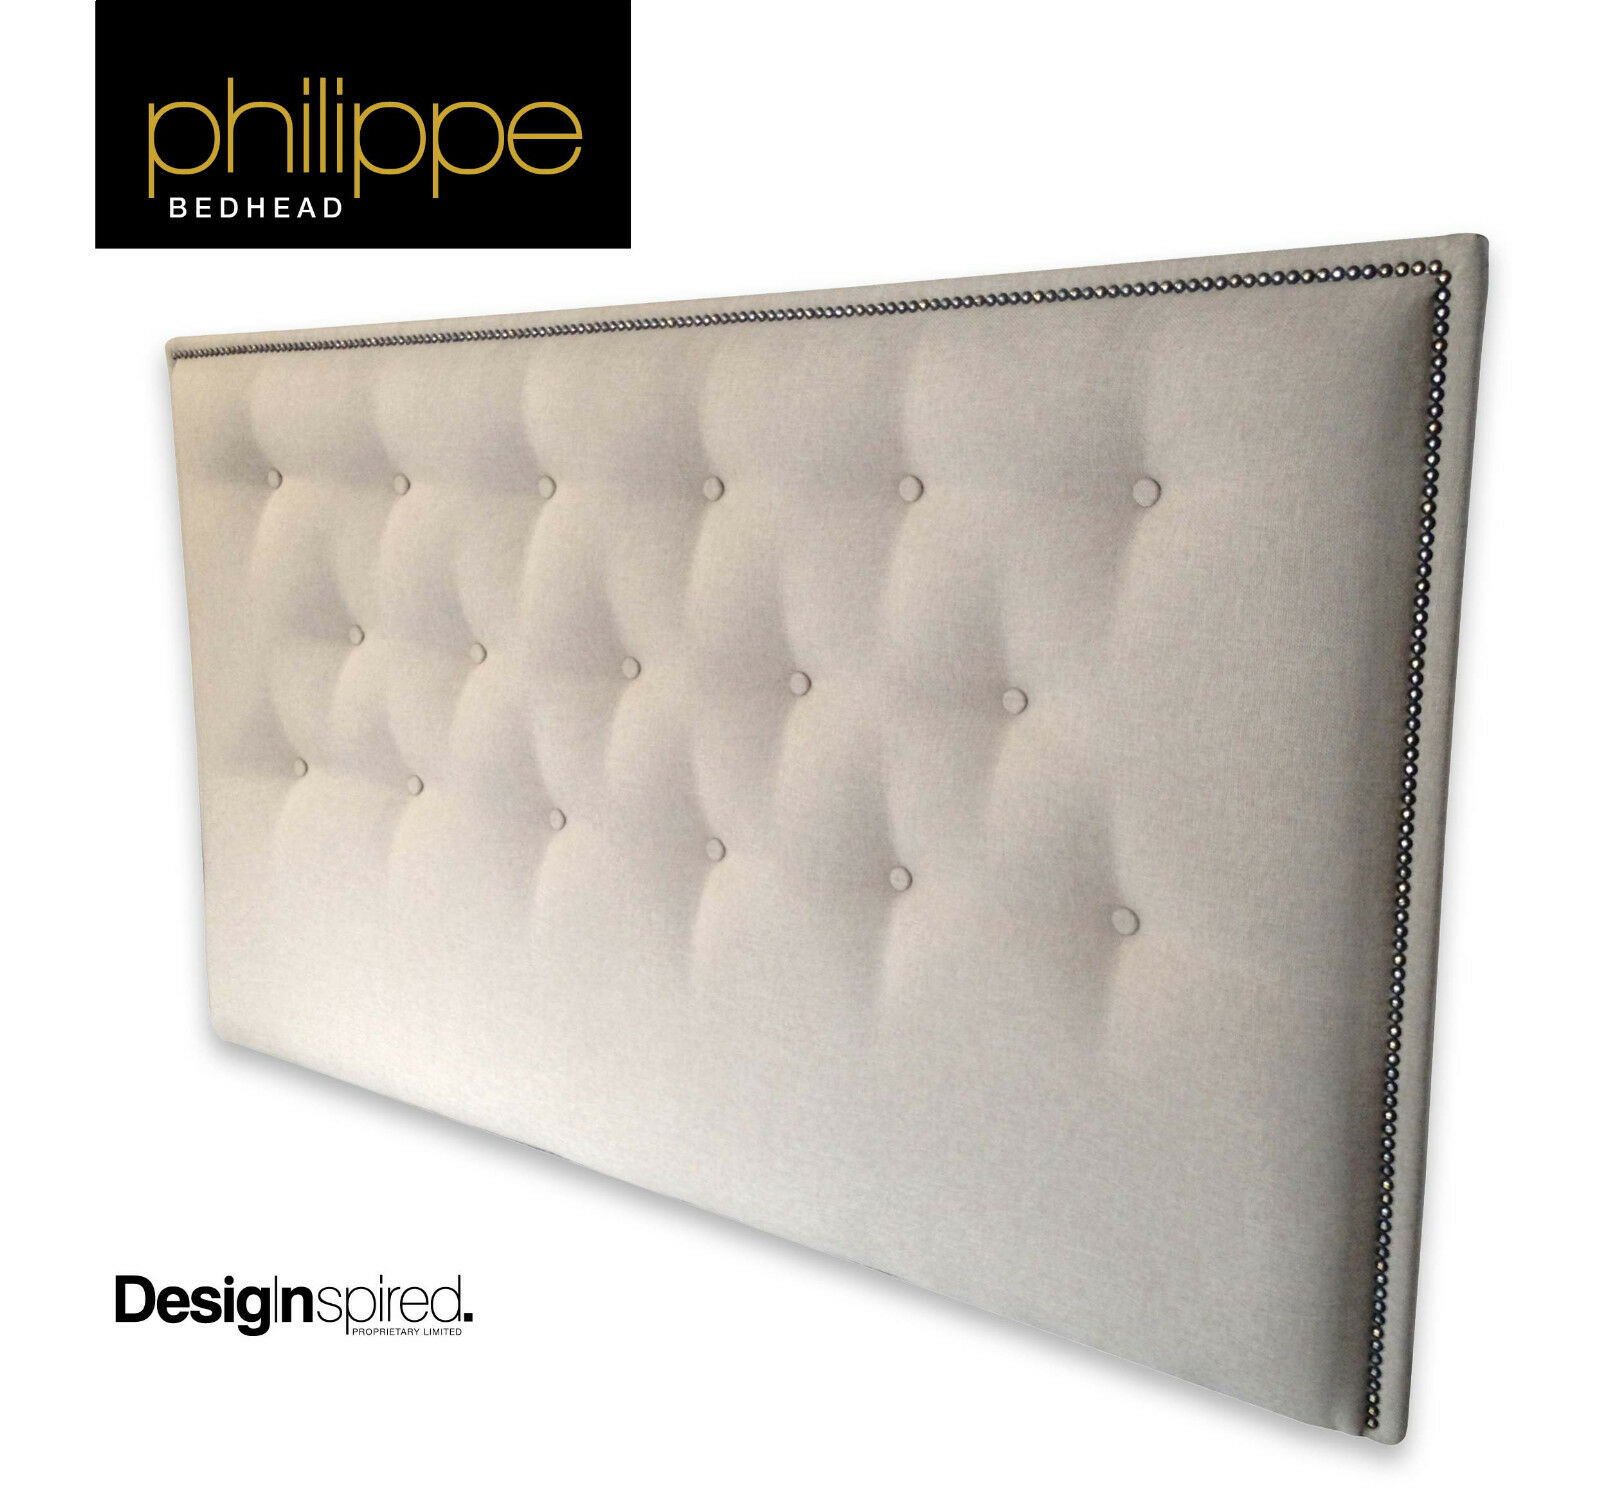 Headboard For Ensemble Philippe Upholstered Bedhead Headboard For King Size